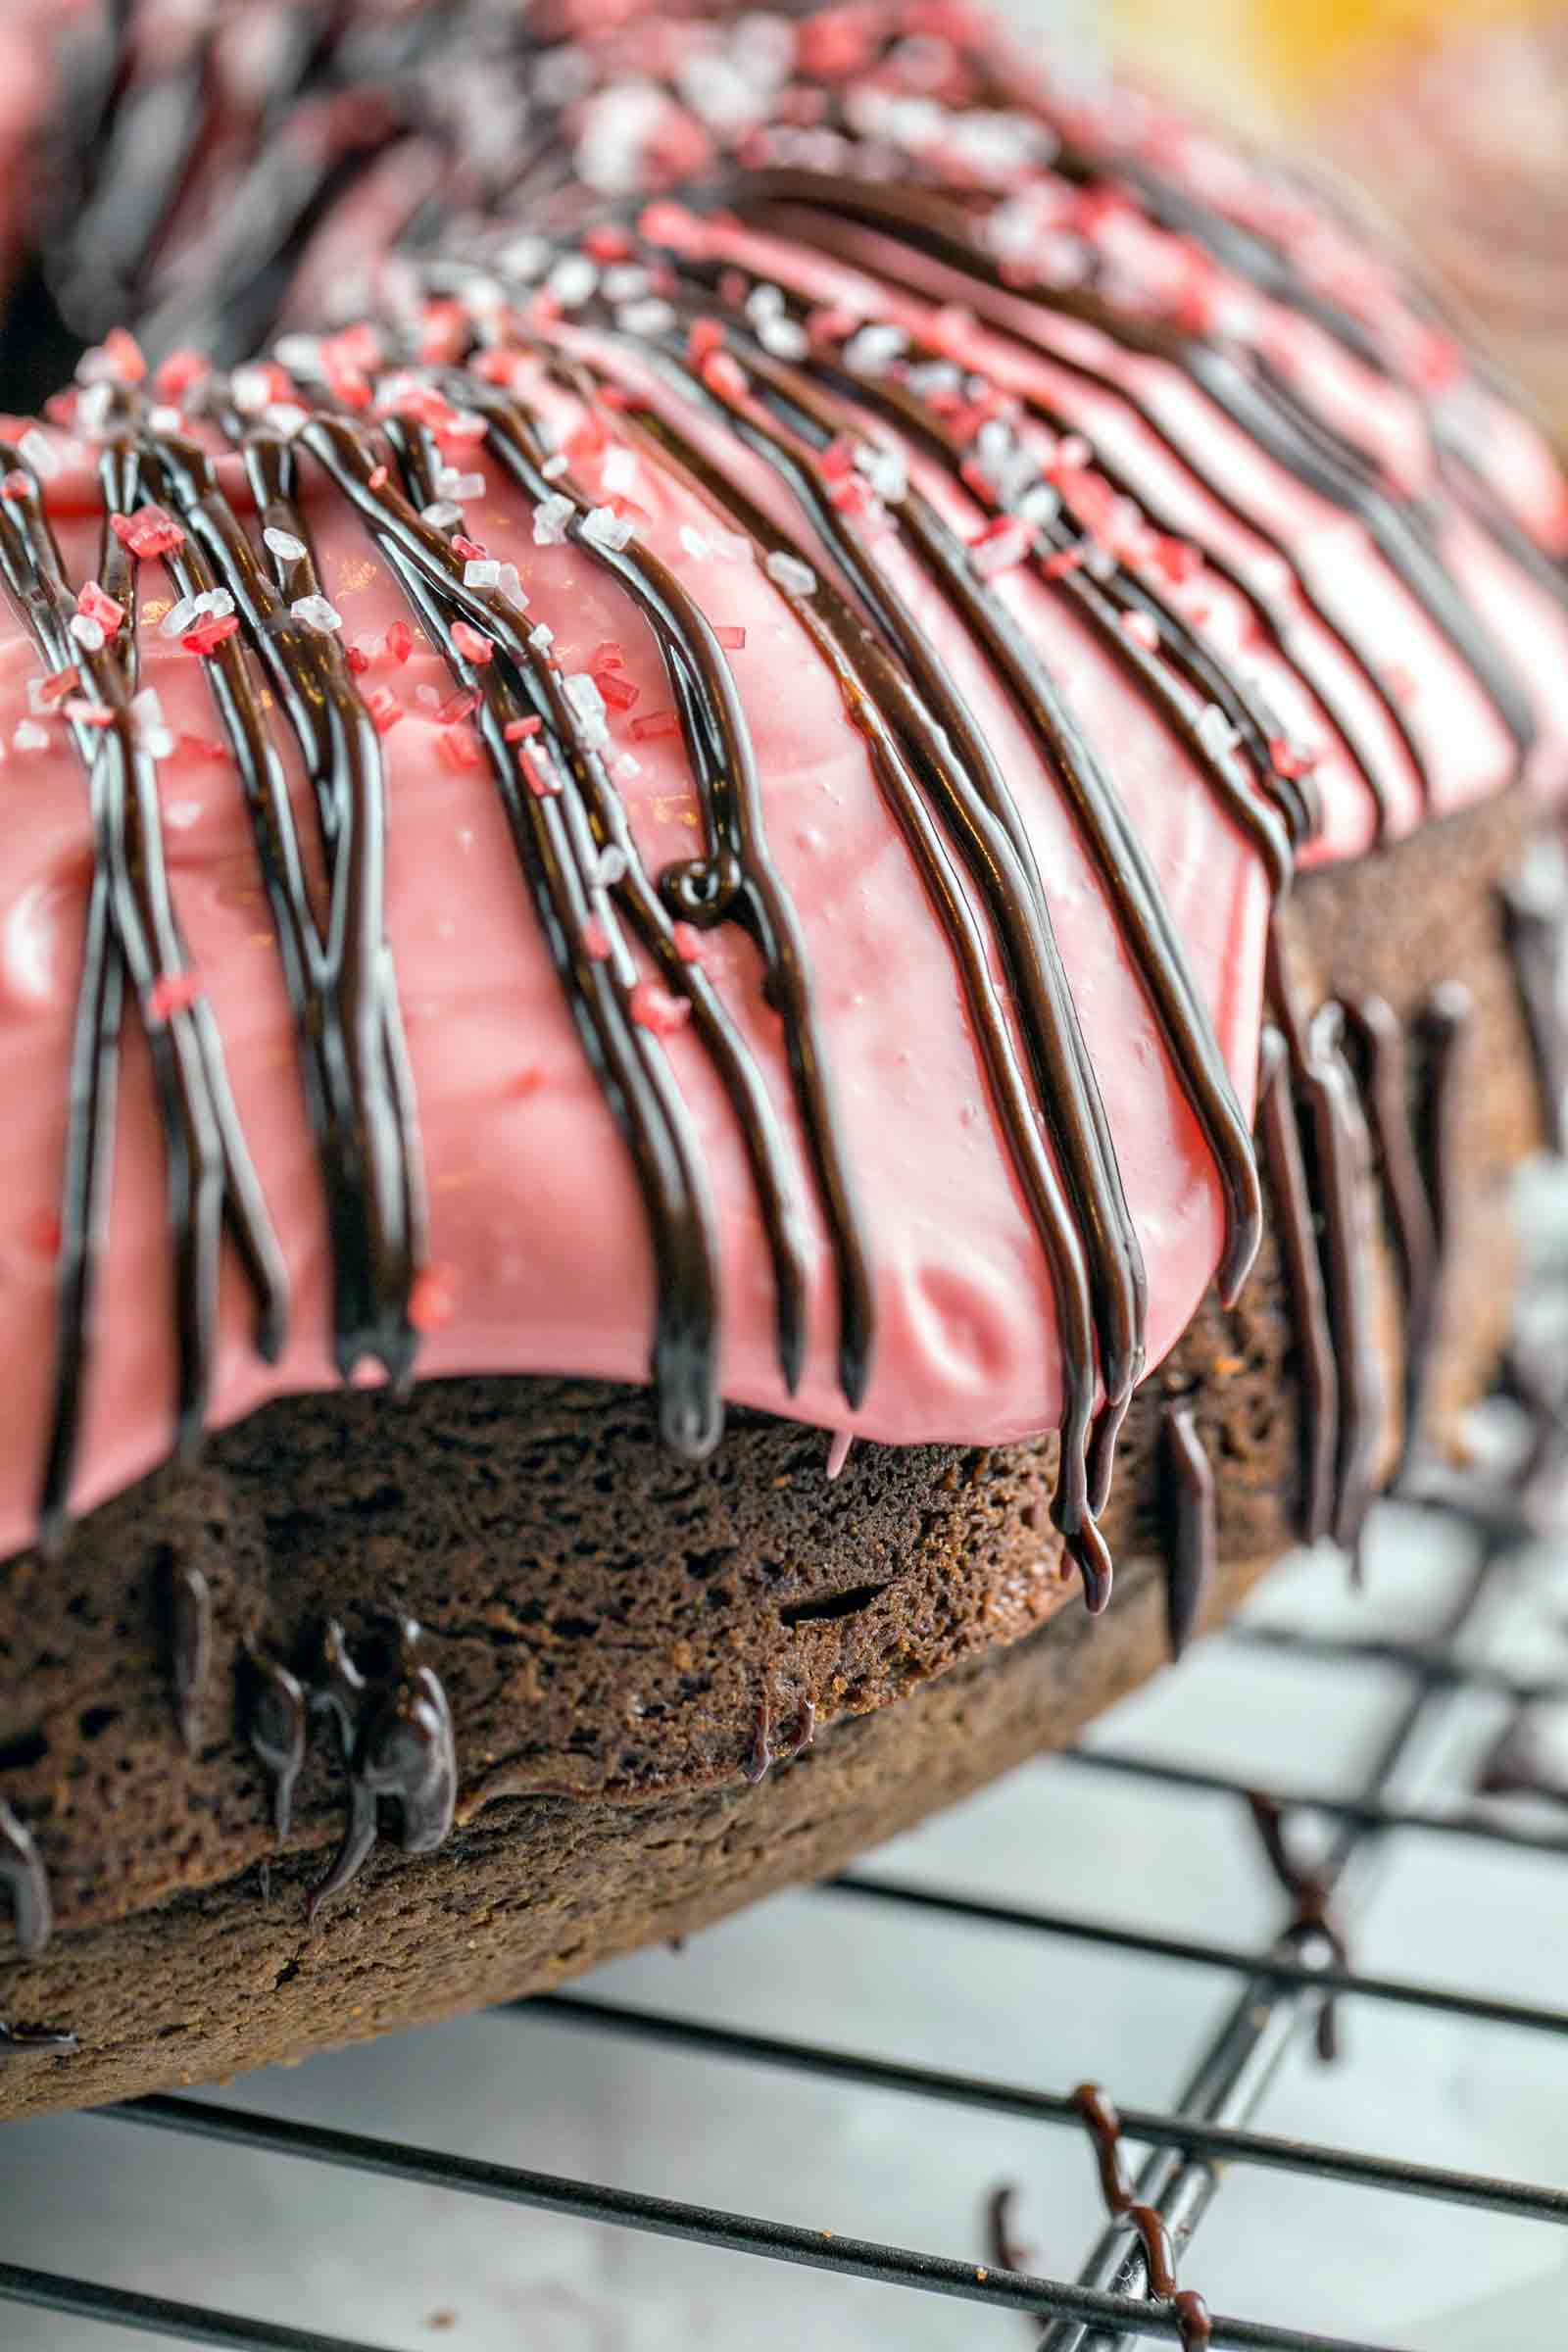 Peppermint Mocha Bundt Cake: rich chocolate cake, peppermint cream cheese frosting, and a chocolate ganache drizzle - this one-bowl mix by hand bunt cake is perfect for holiday entertaining. {Bunsen Burner Bakery}